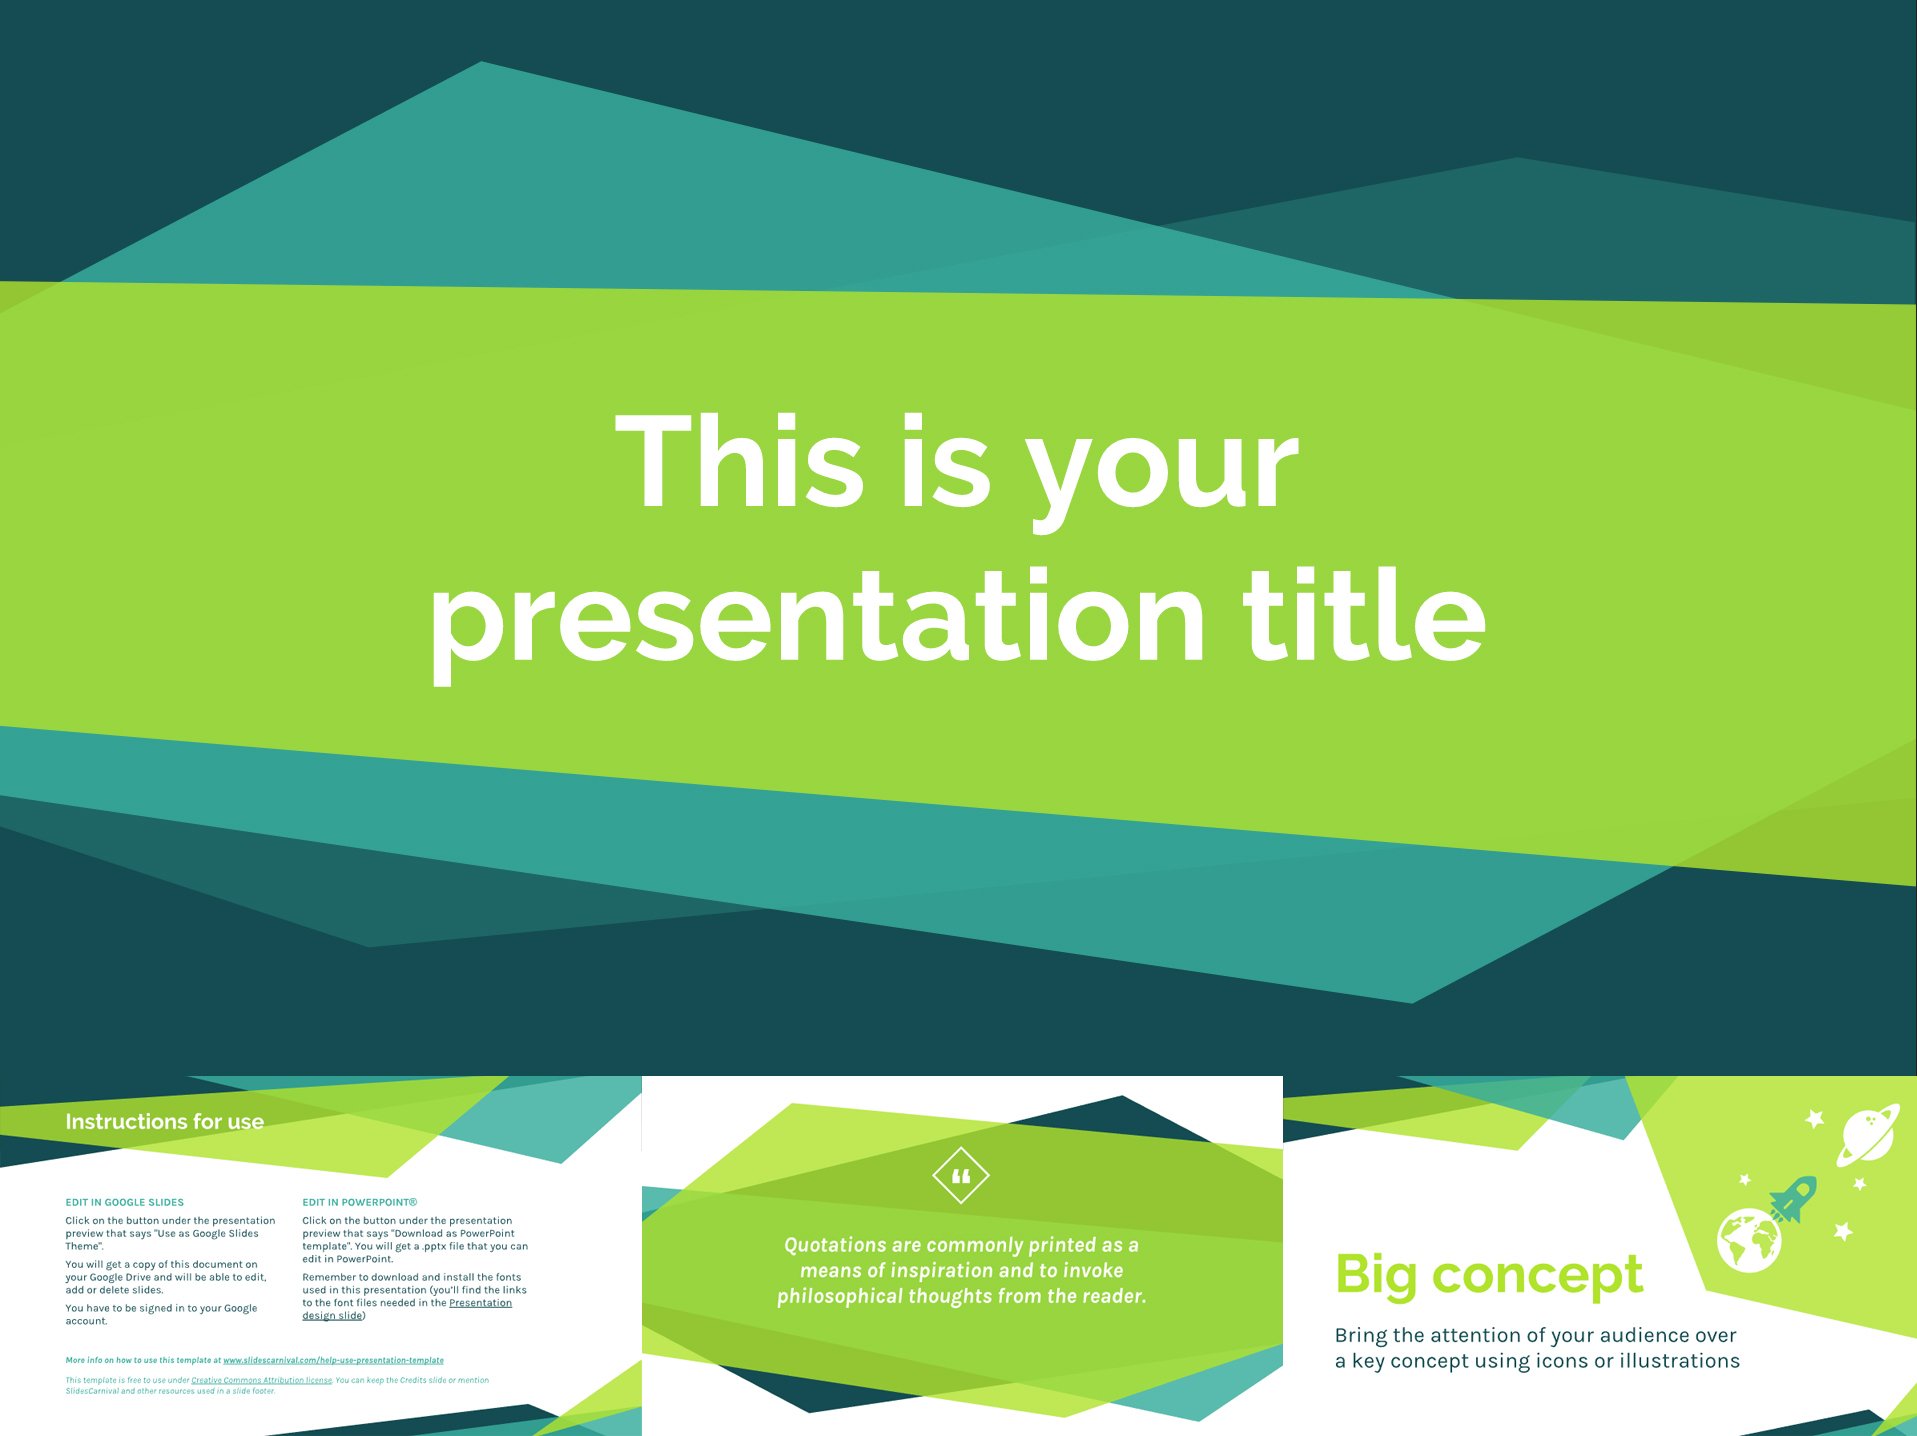 Free Google Slides Templates in Fresh Colors - The Internet Tips